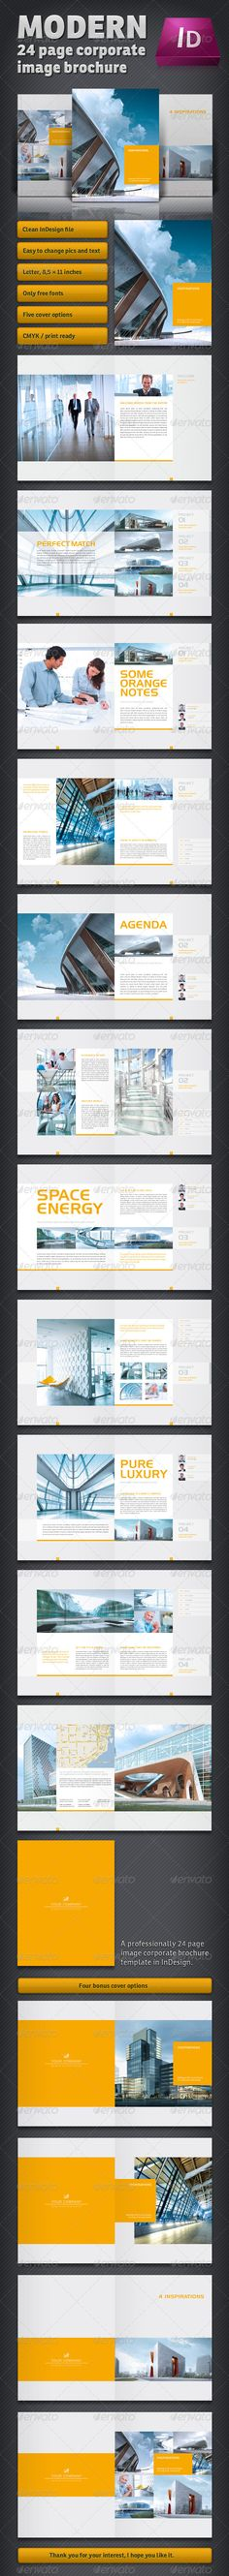 Training Company Brochure Template   Pages  Print  Company